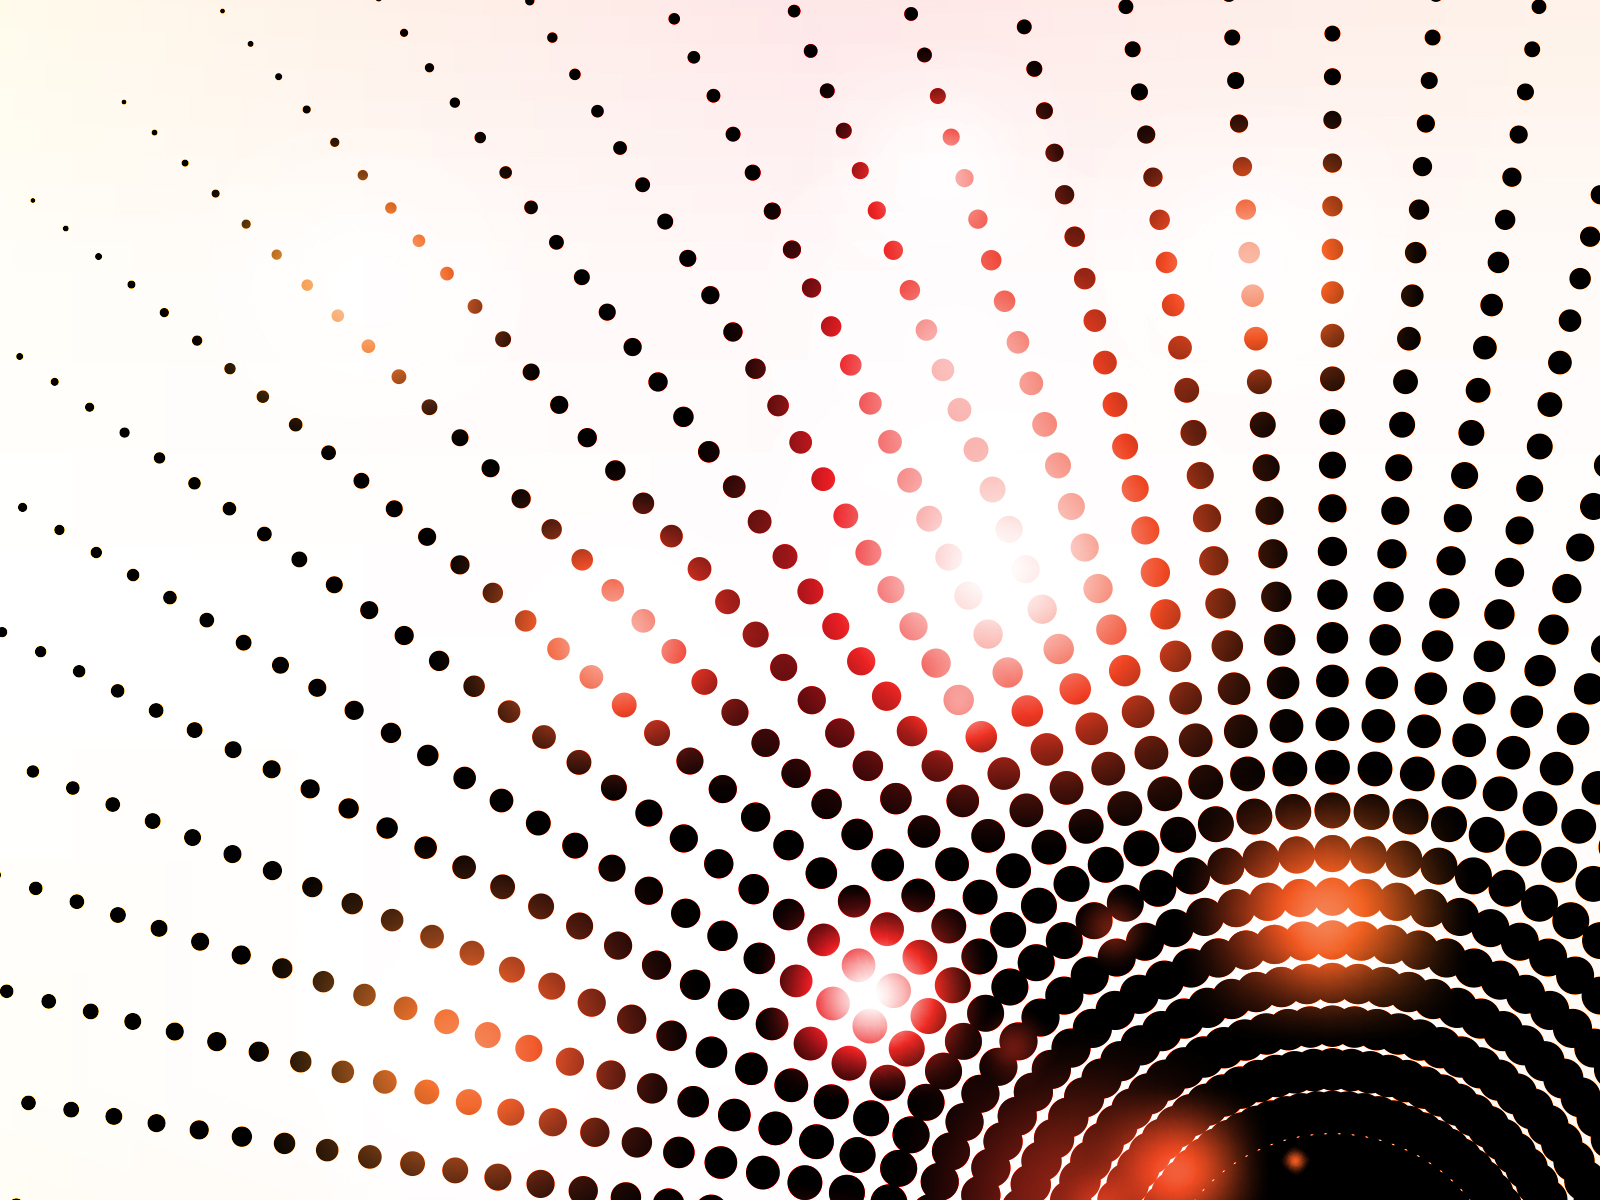 Radial Dotted Lights Backgrounds 3d Black Red